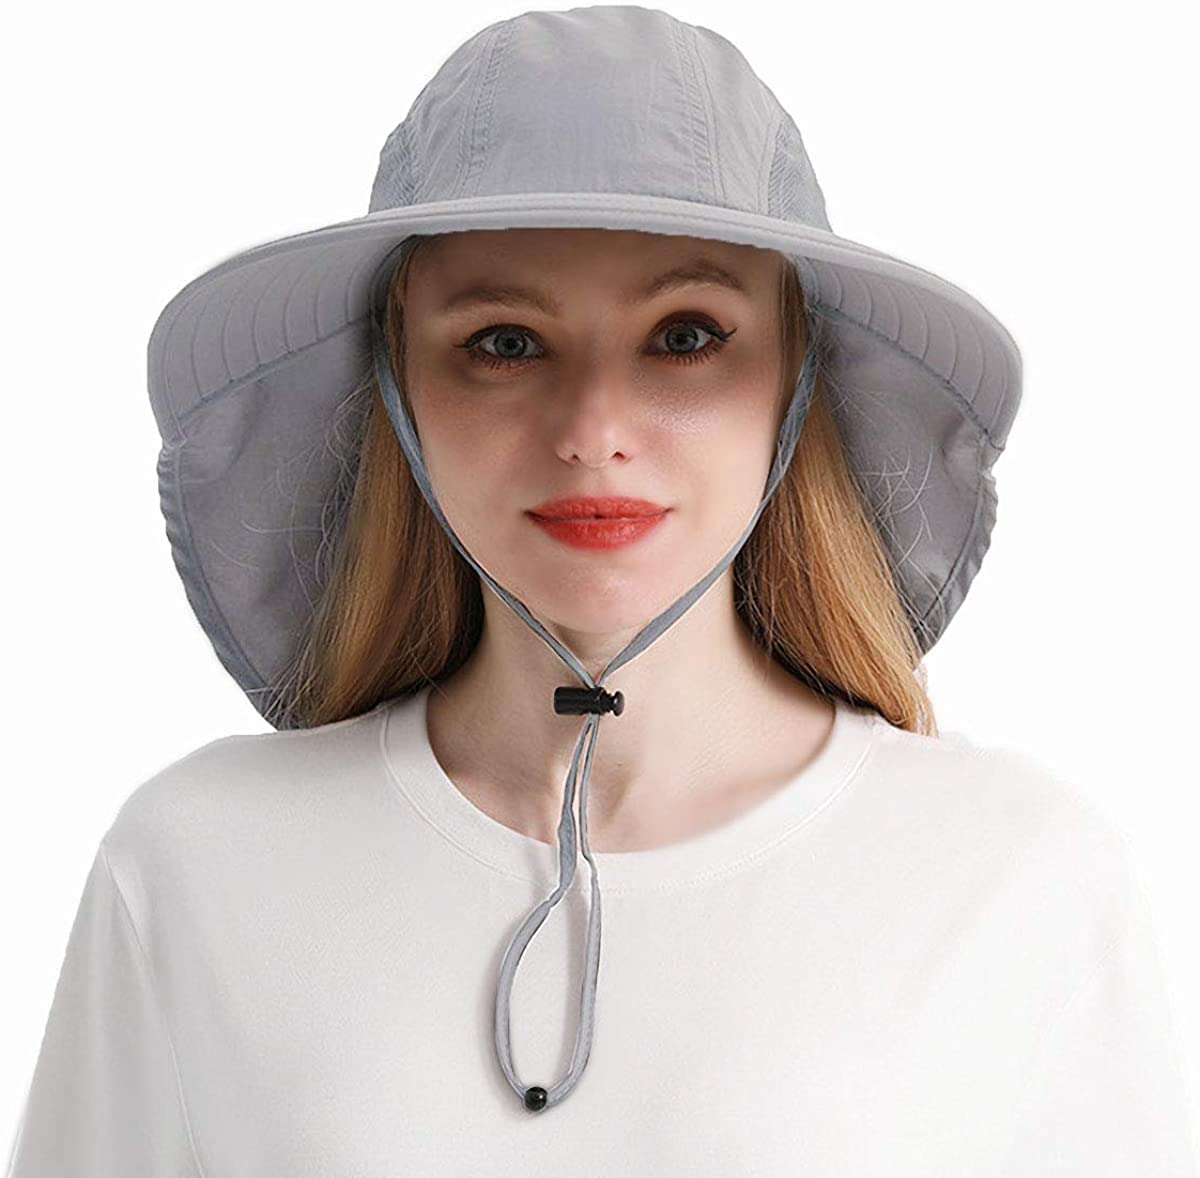 70% OFF Outlet Wide Brim Sun Hat for Men Protection UPF Women Outdoor Finally popular brand 50+ S